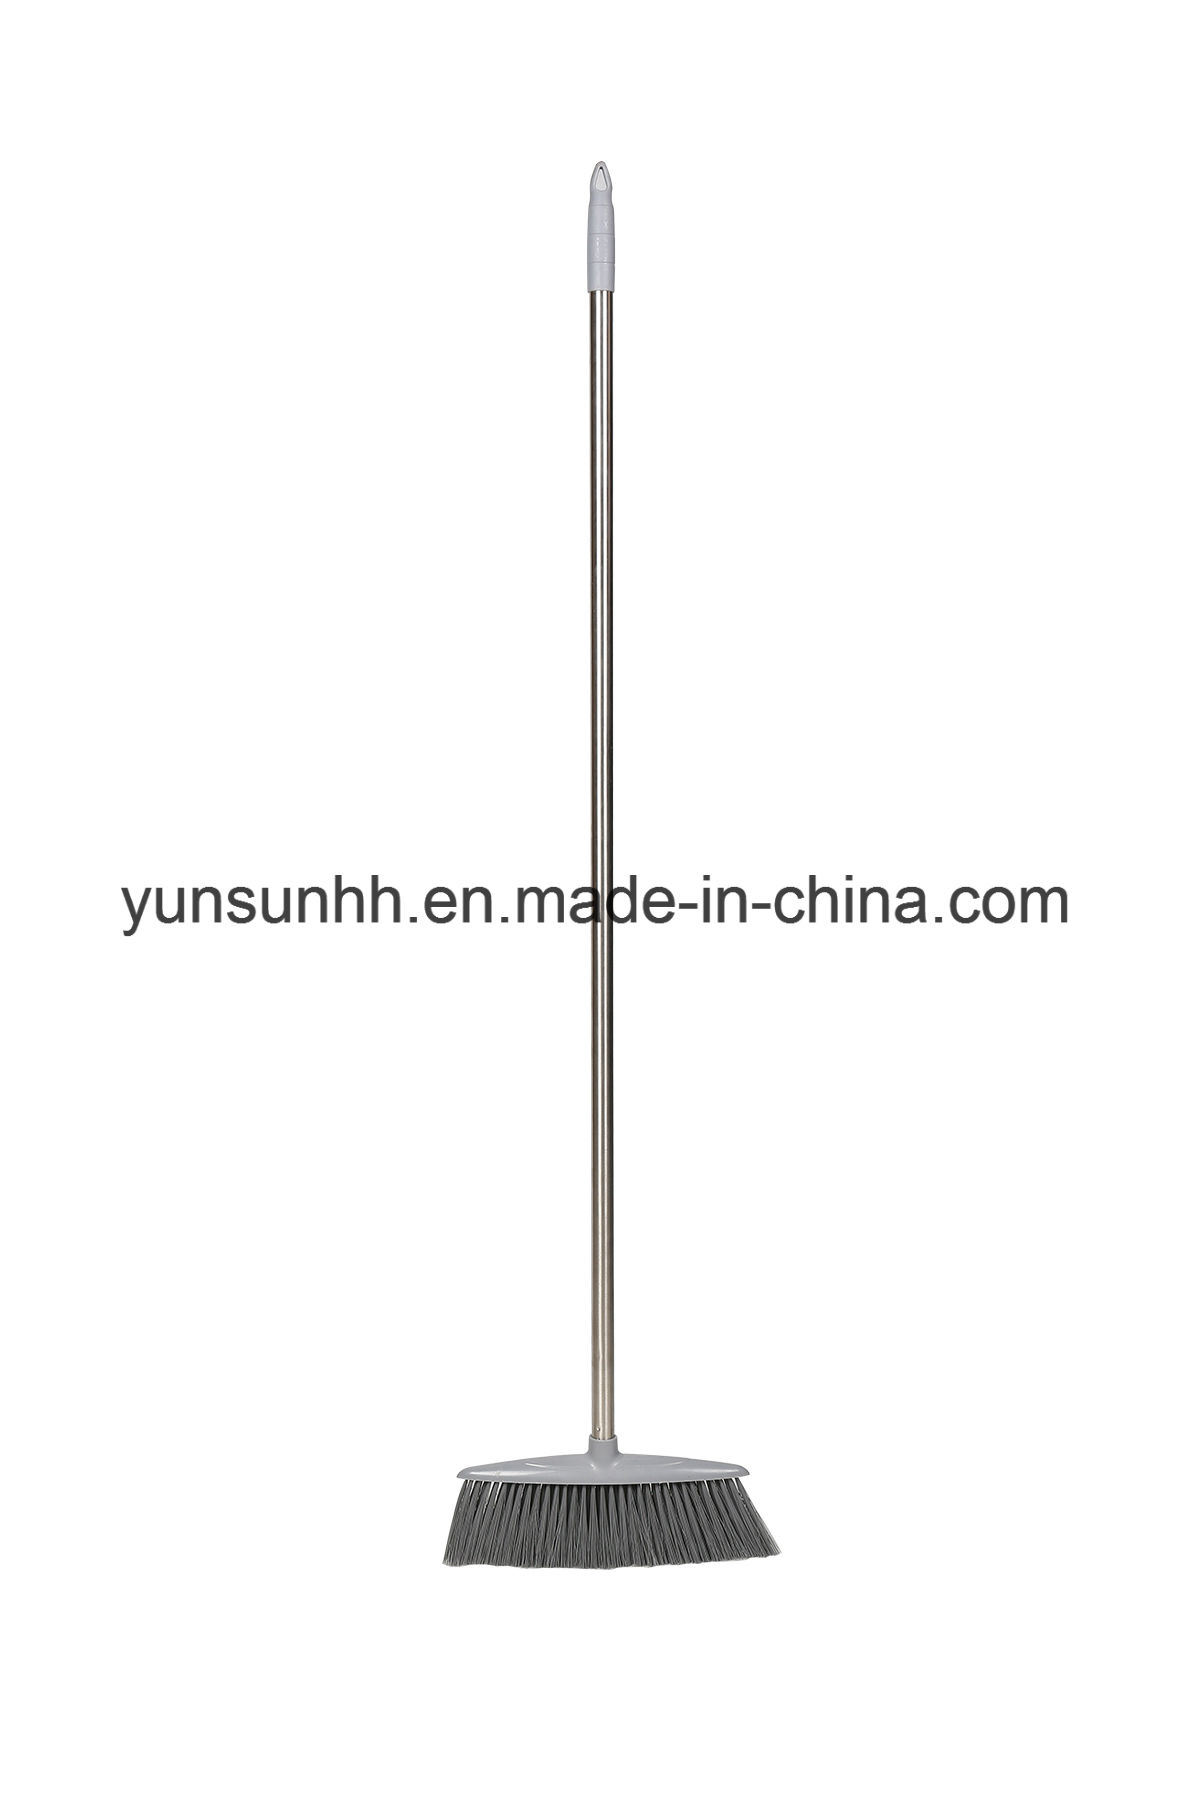 Floor Broom, Brush, Cleaner Tool, Garden Broom